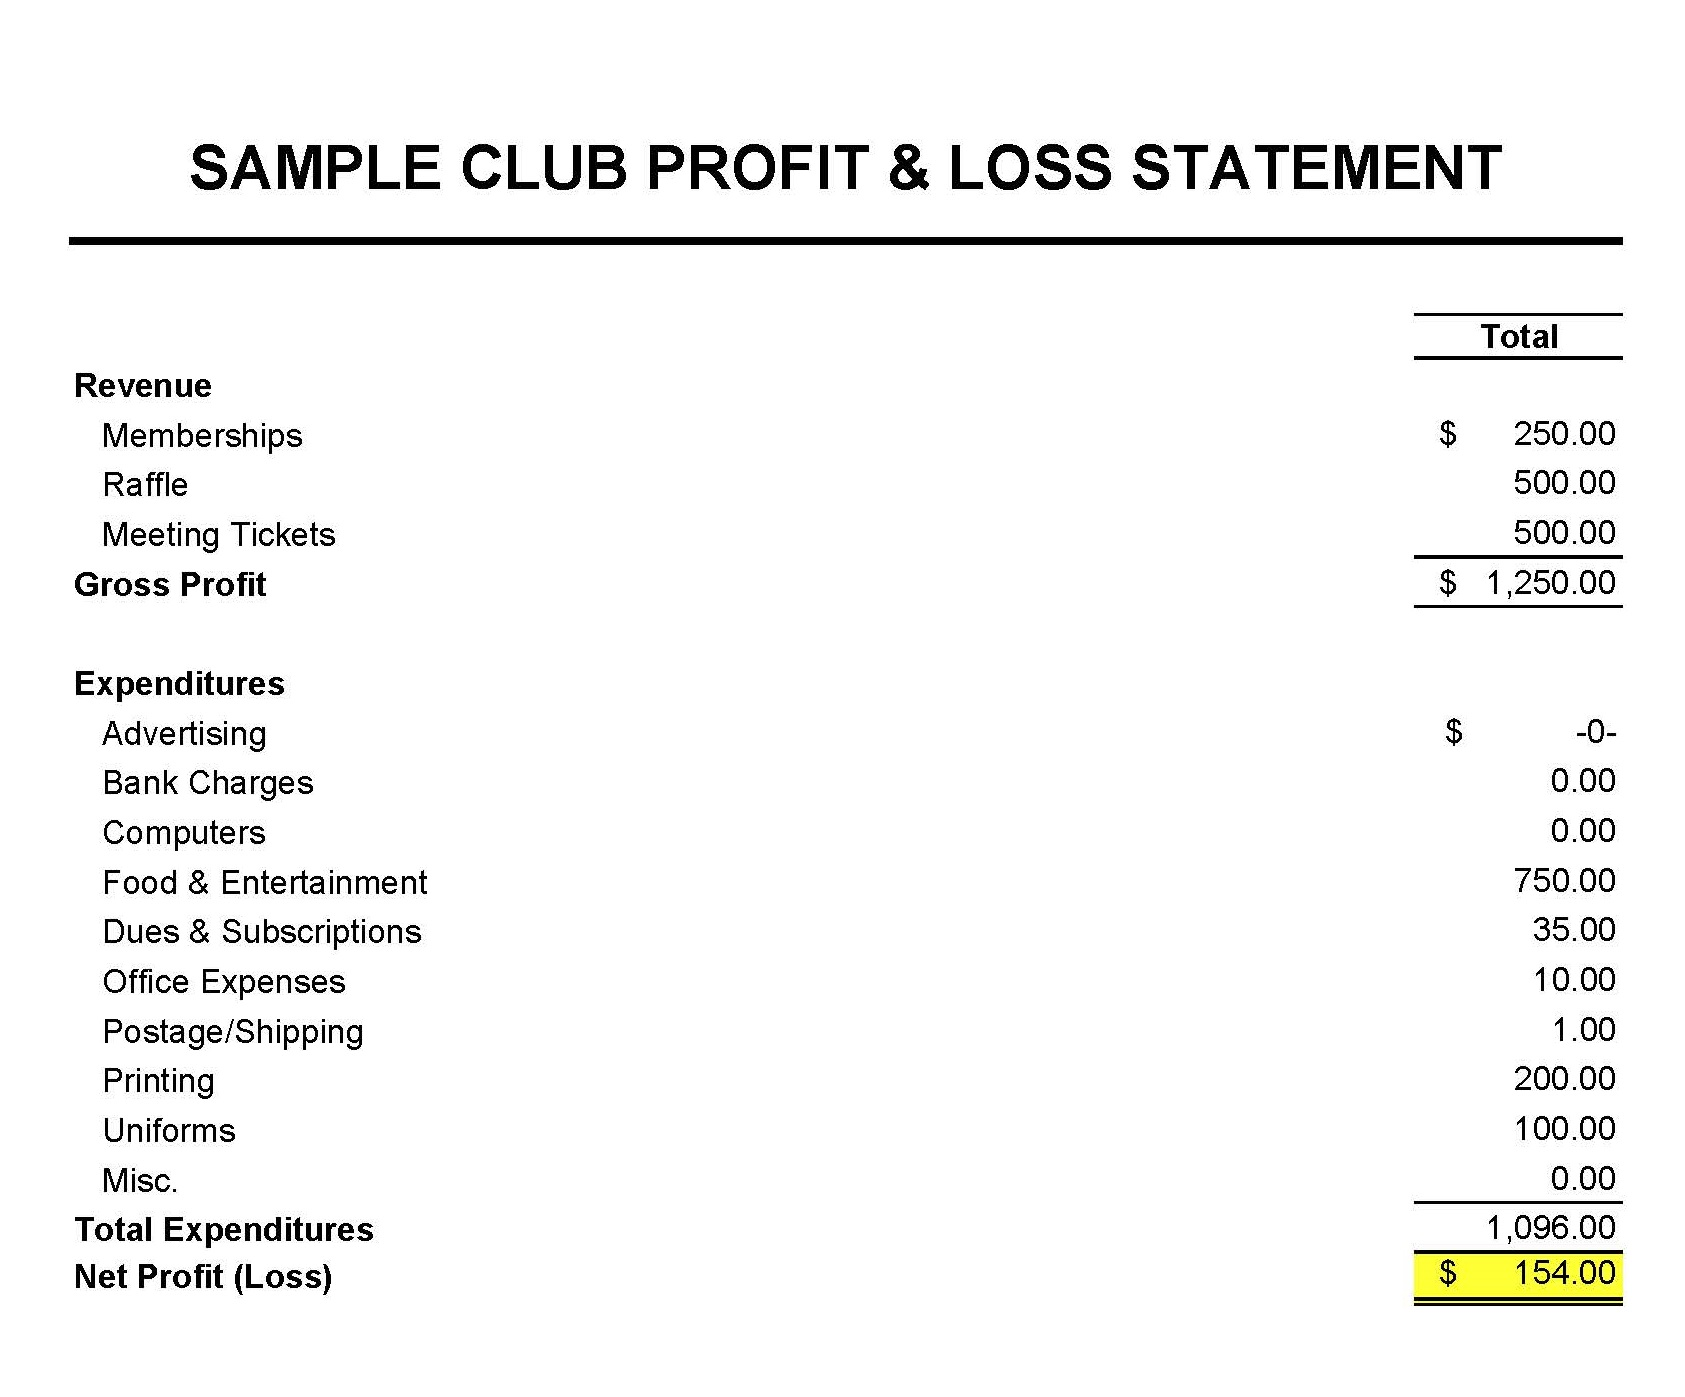 Treasurer's Report Template Non Profit Excel from masna.org